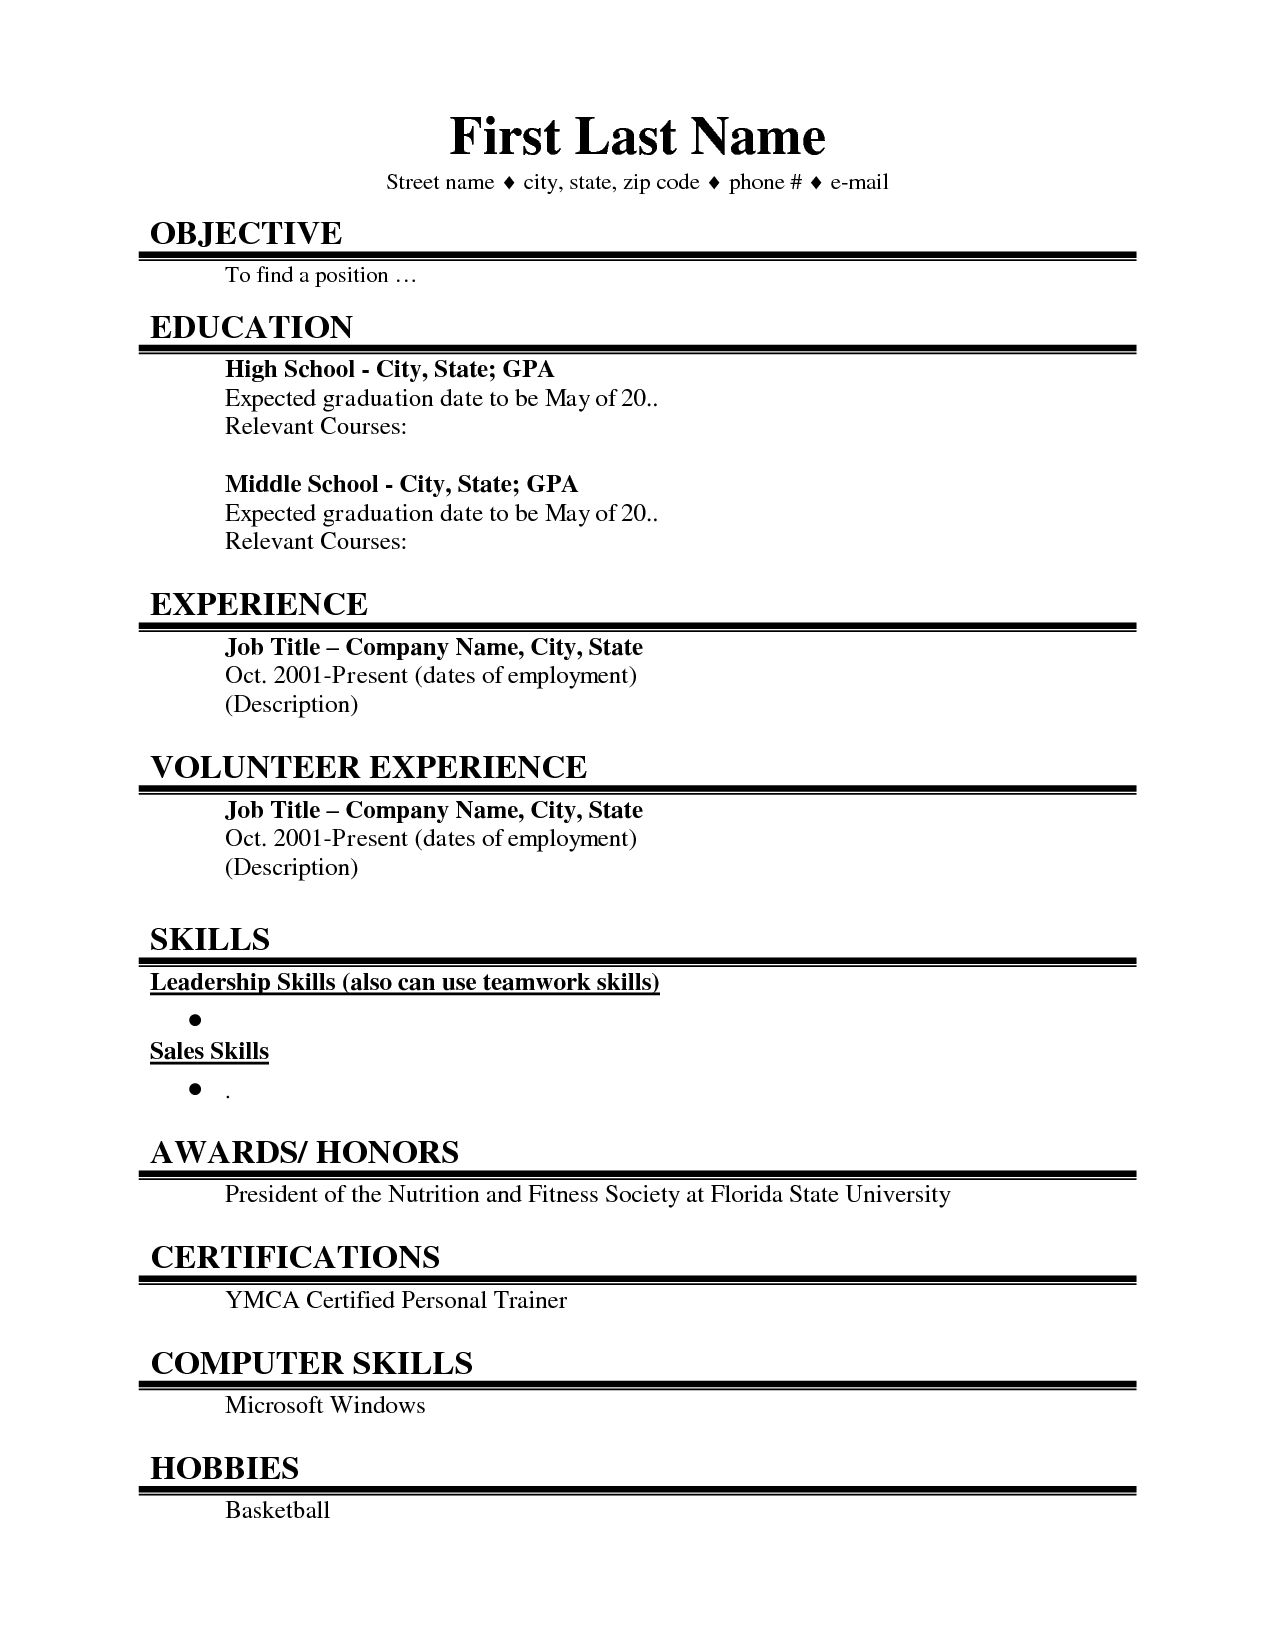 Good Career Objective Resume 10 Resume Objective For High School Student  Resume Resume Examples .  High School Student Resume Samples